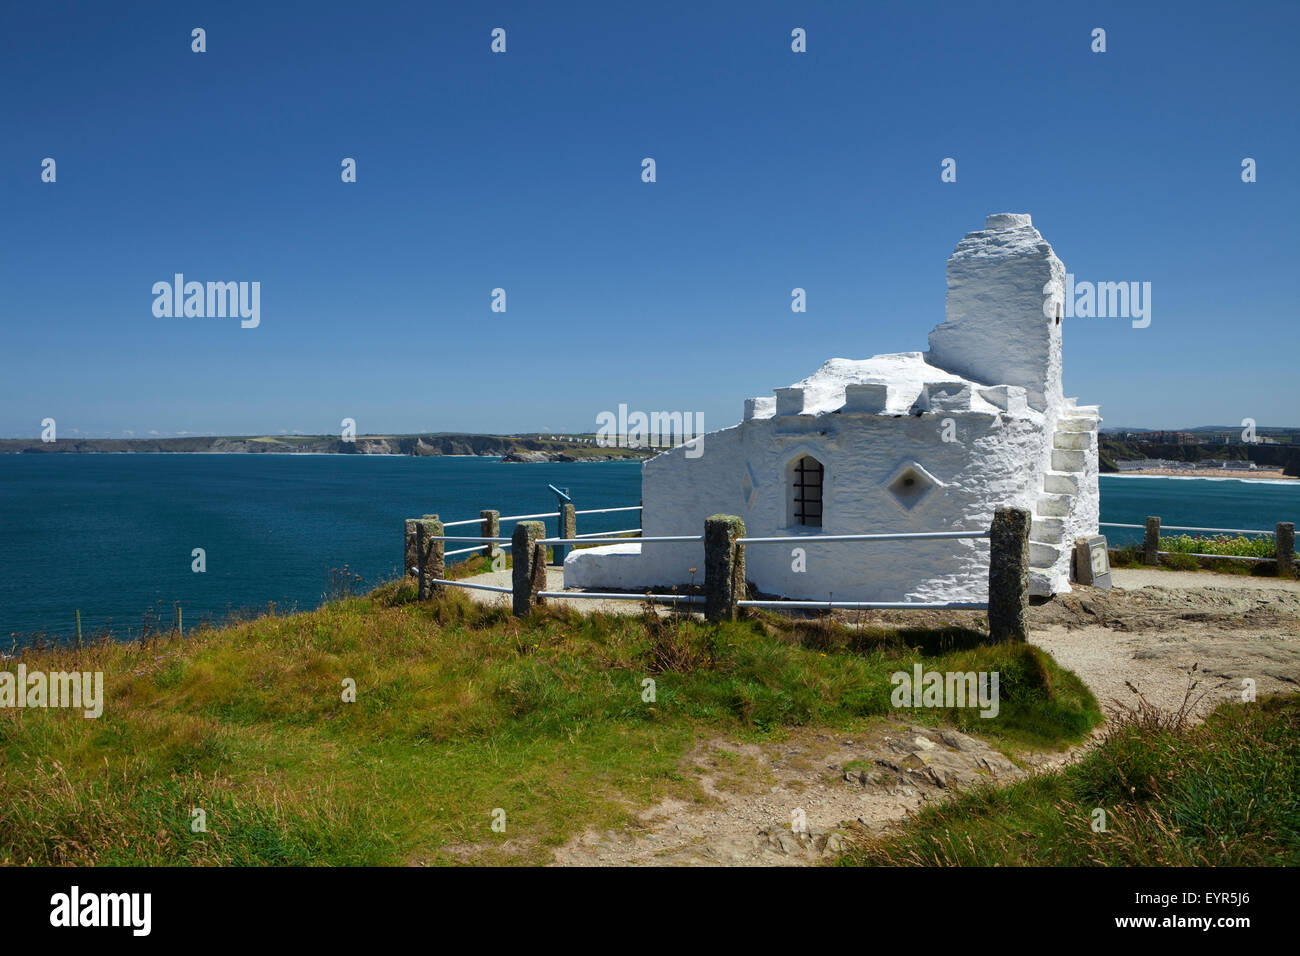 The Huer's Hut, Used in past times to watch for shoals of herring, Newquay, Cornwall, England - Stock Image